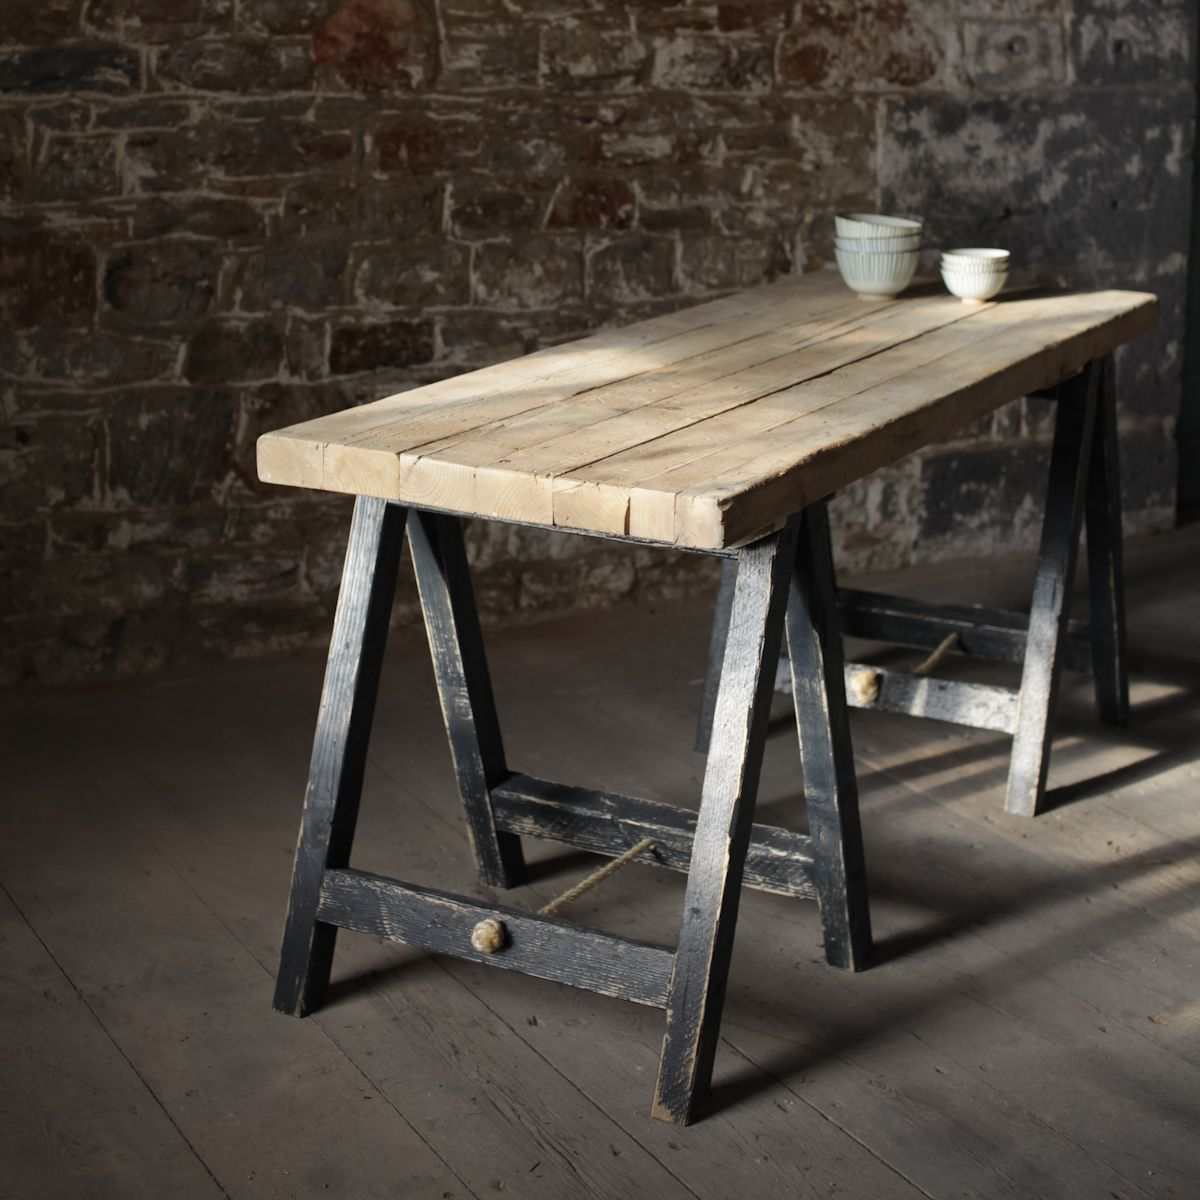 Lomwe Trestle Table The Lomwe Trestle Table Is Handmade From Reclaimed Boards And Completed With Distress Wooden Trestle Table Outdoor Wood Table Trestle Table